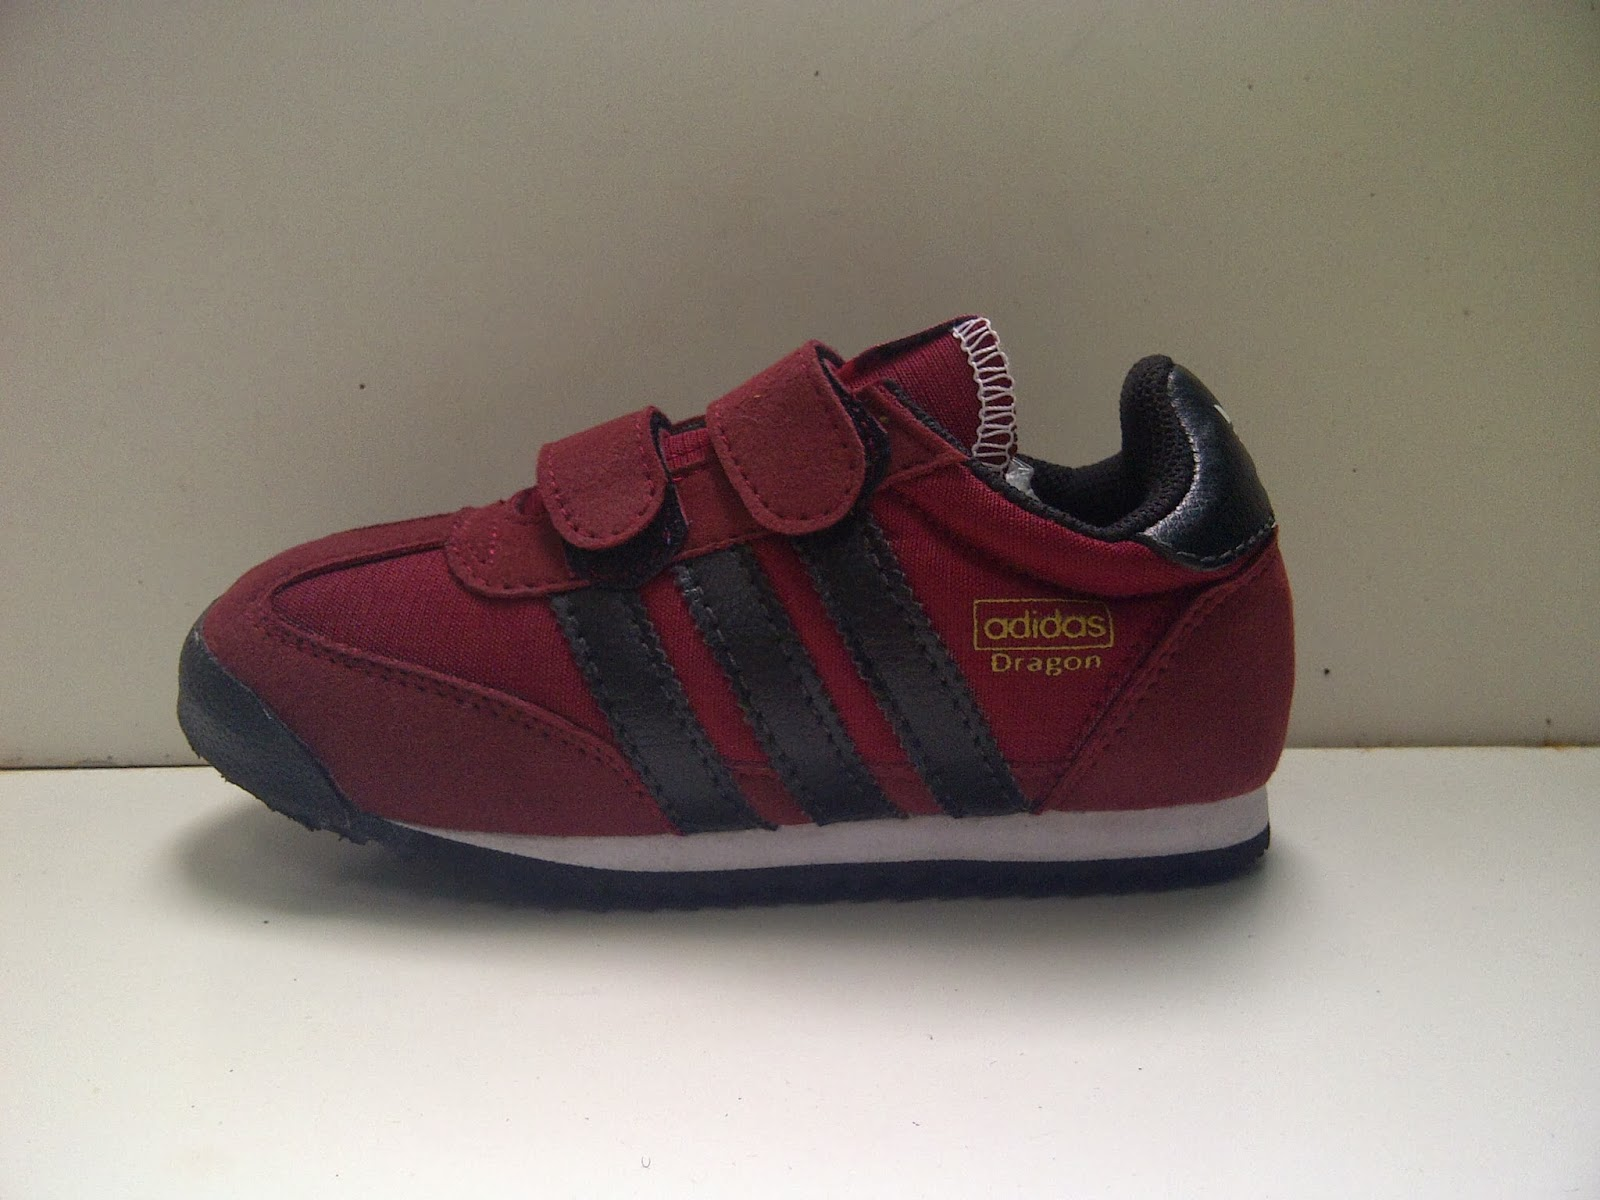 Sepatu Adidas Dragon Mini Supplier Murah Nike Warna Merah Maroon